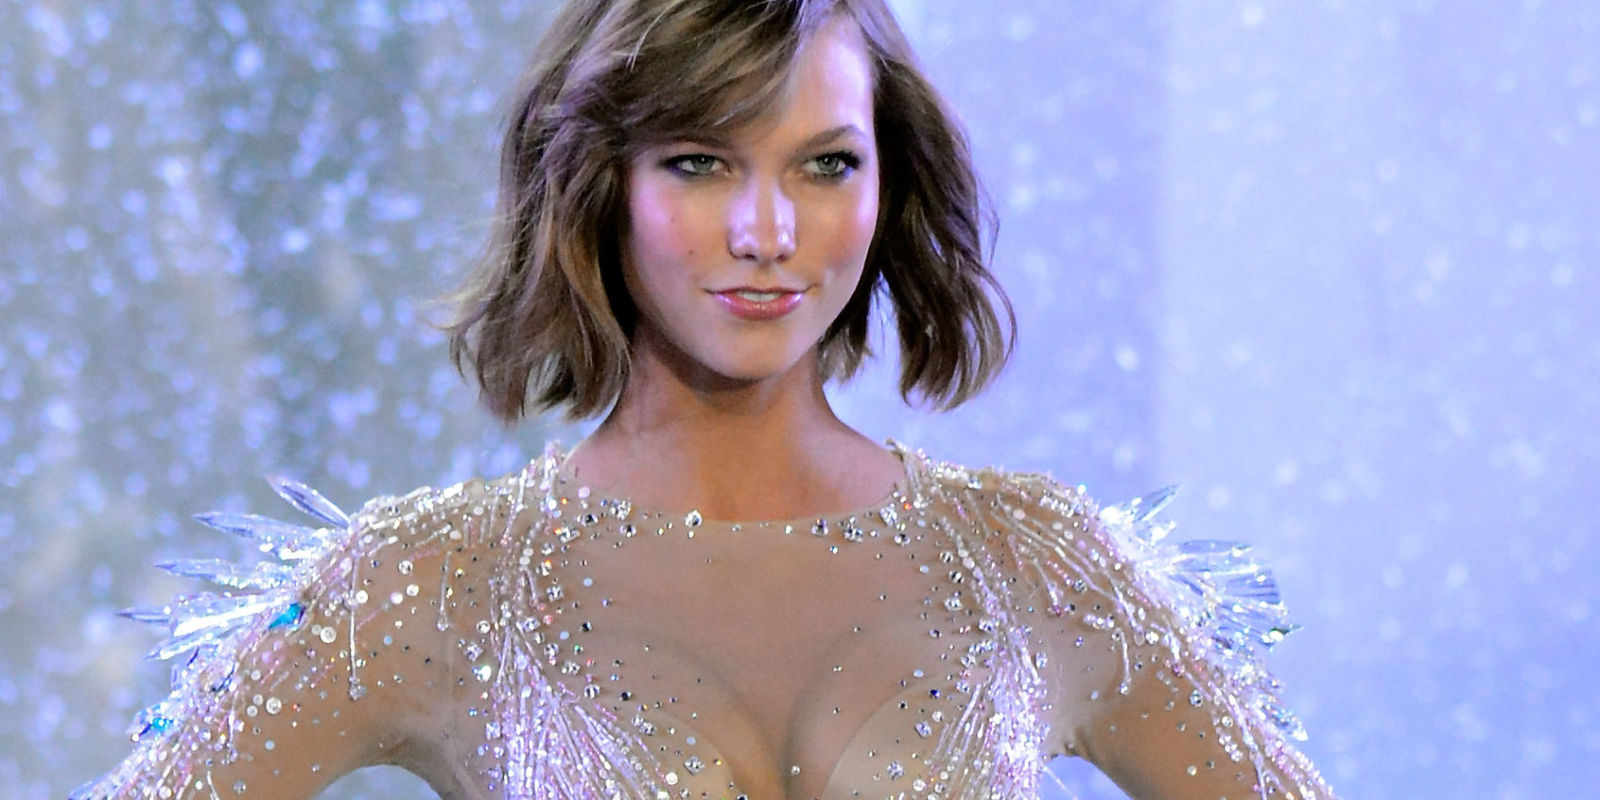 Here's a Sneak Peek at the Sparkly Victoria's Secret Angel ...